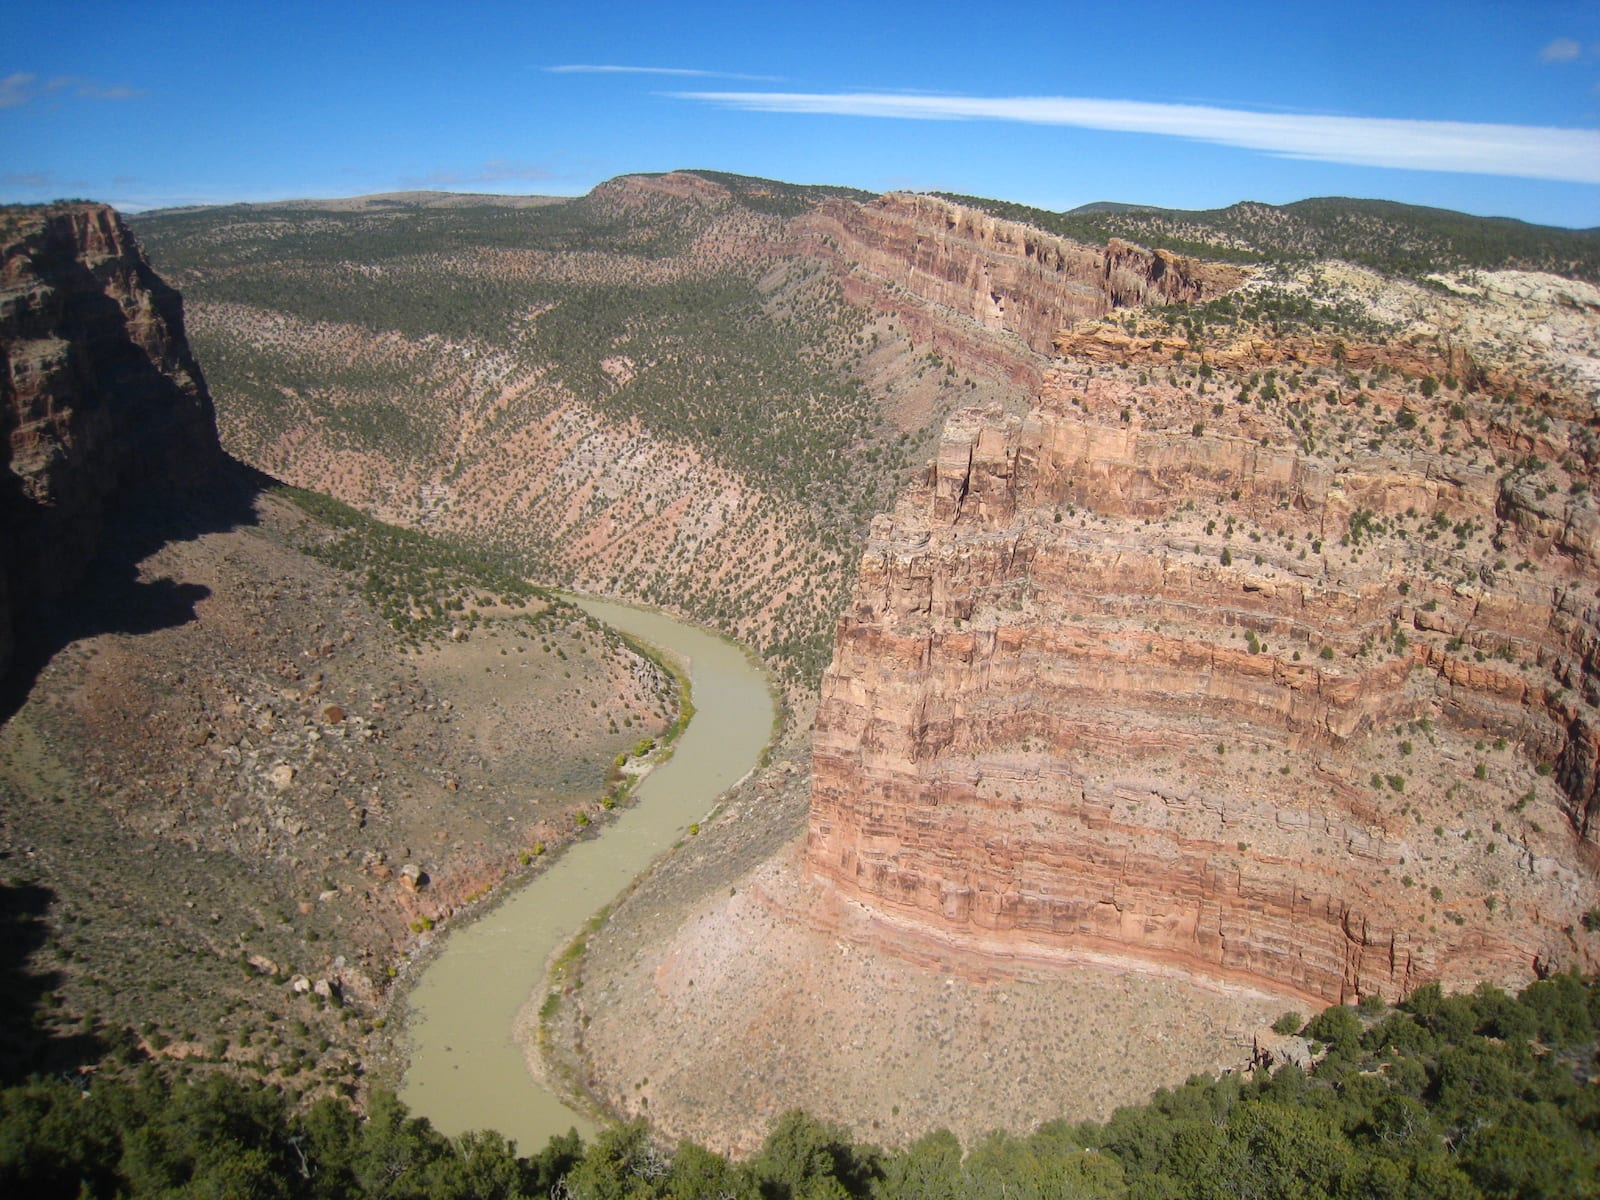 Yampa River, Dinosaur National Monument, Colorado